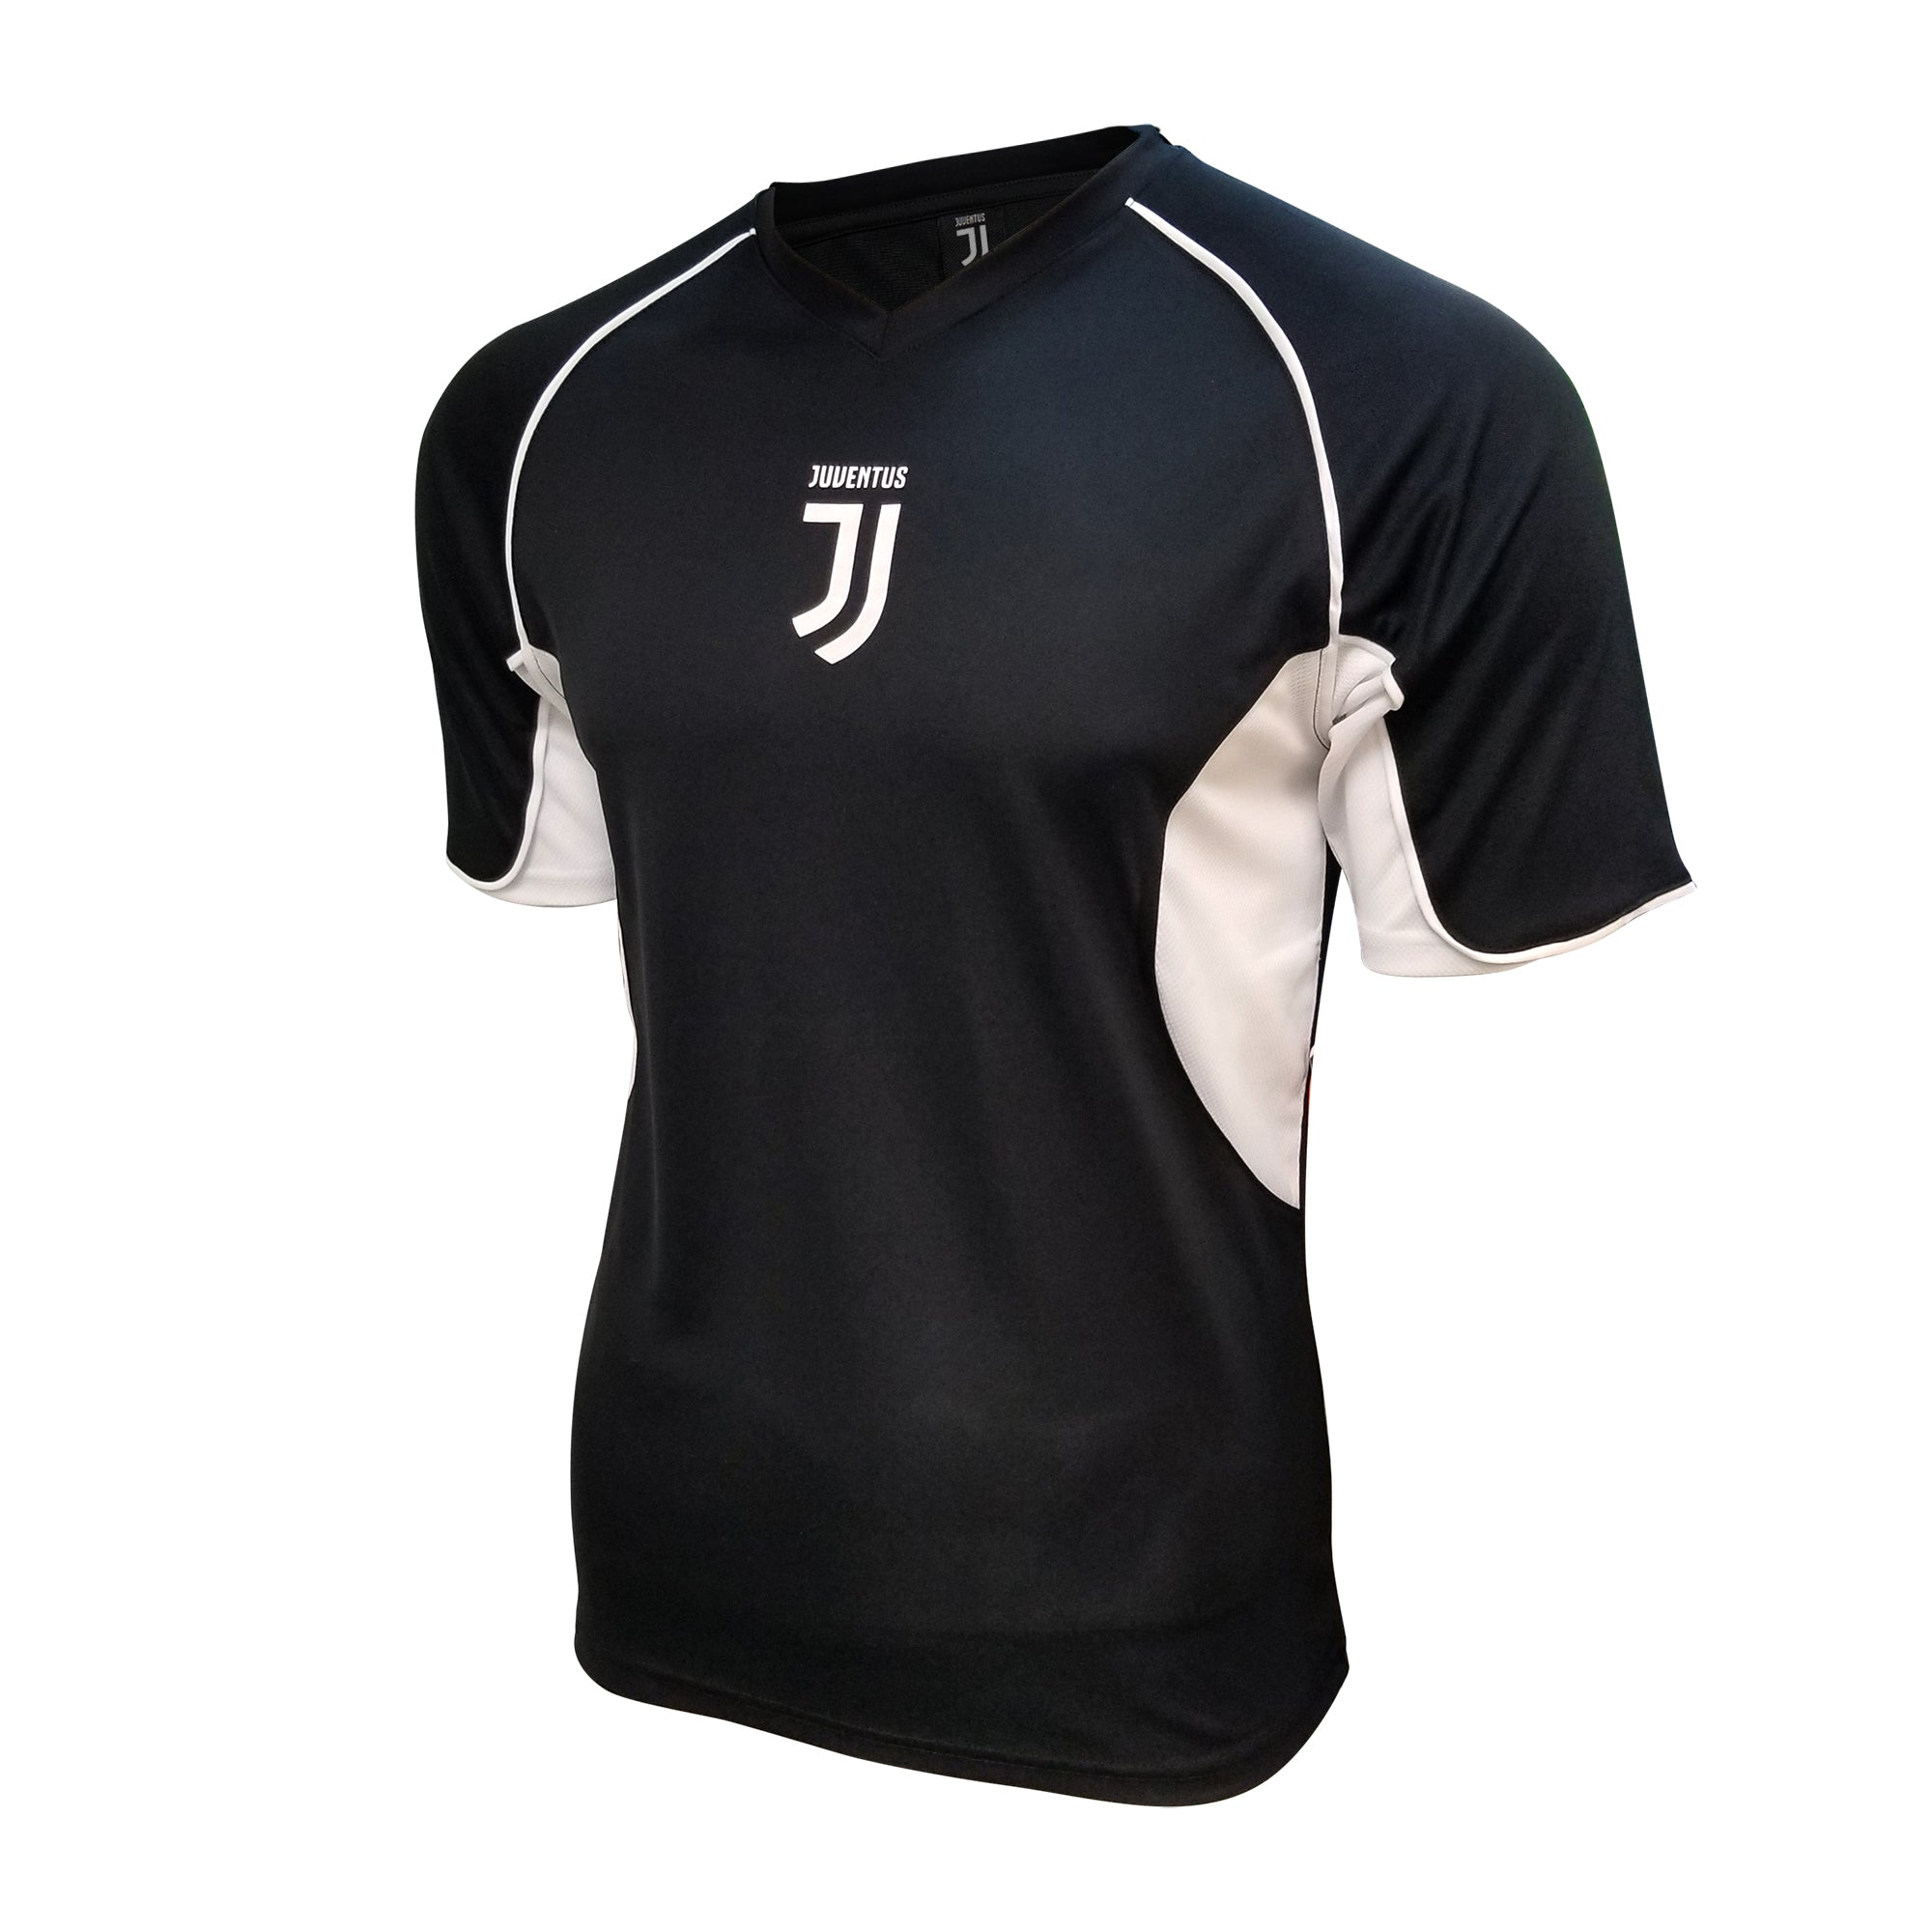 Juventus Rearview Game Class Shirt - Black by Icon Sports